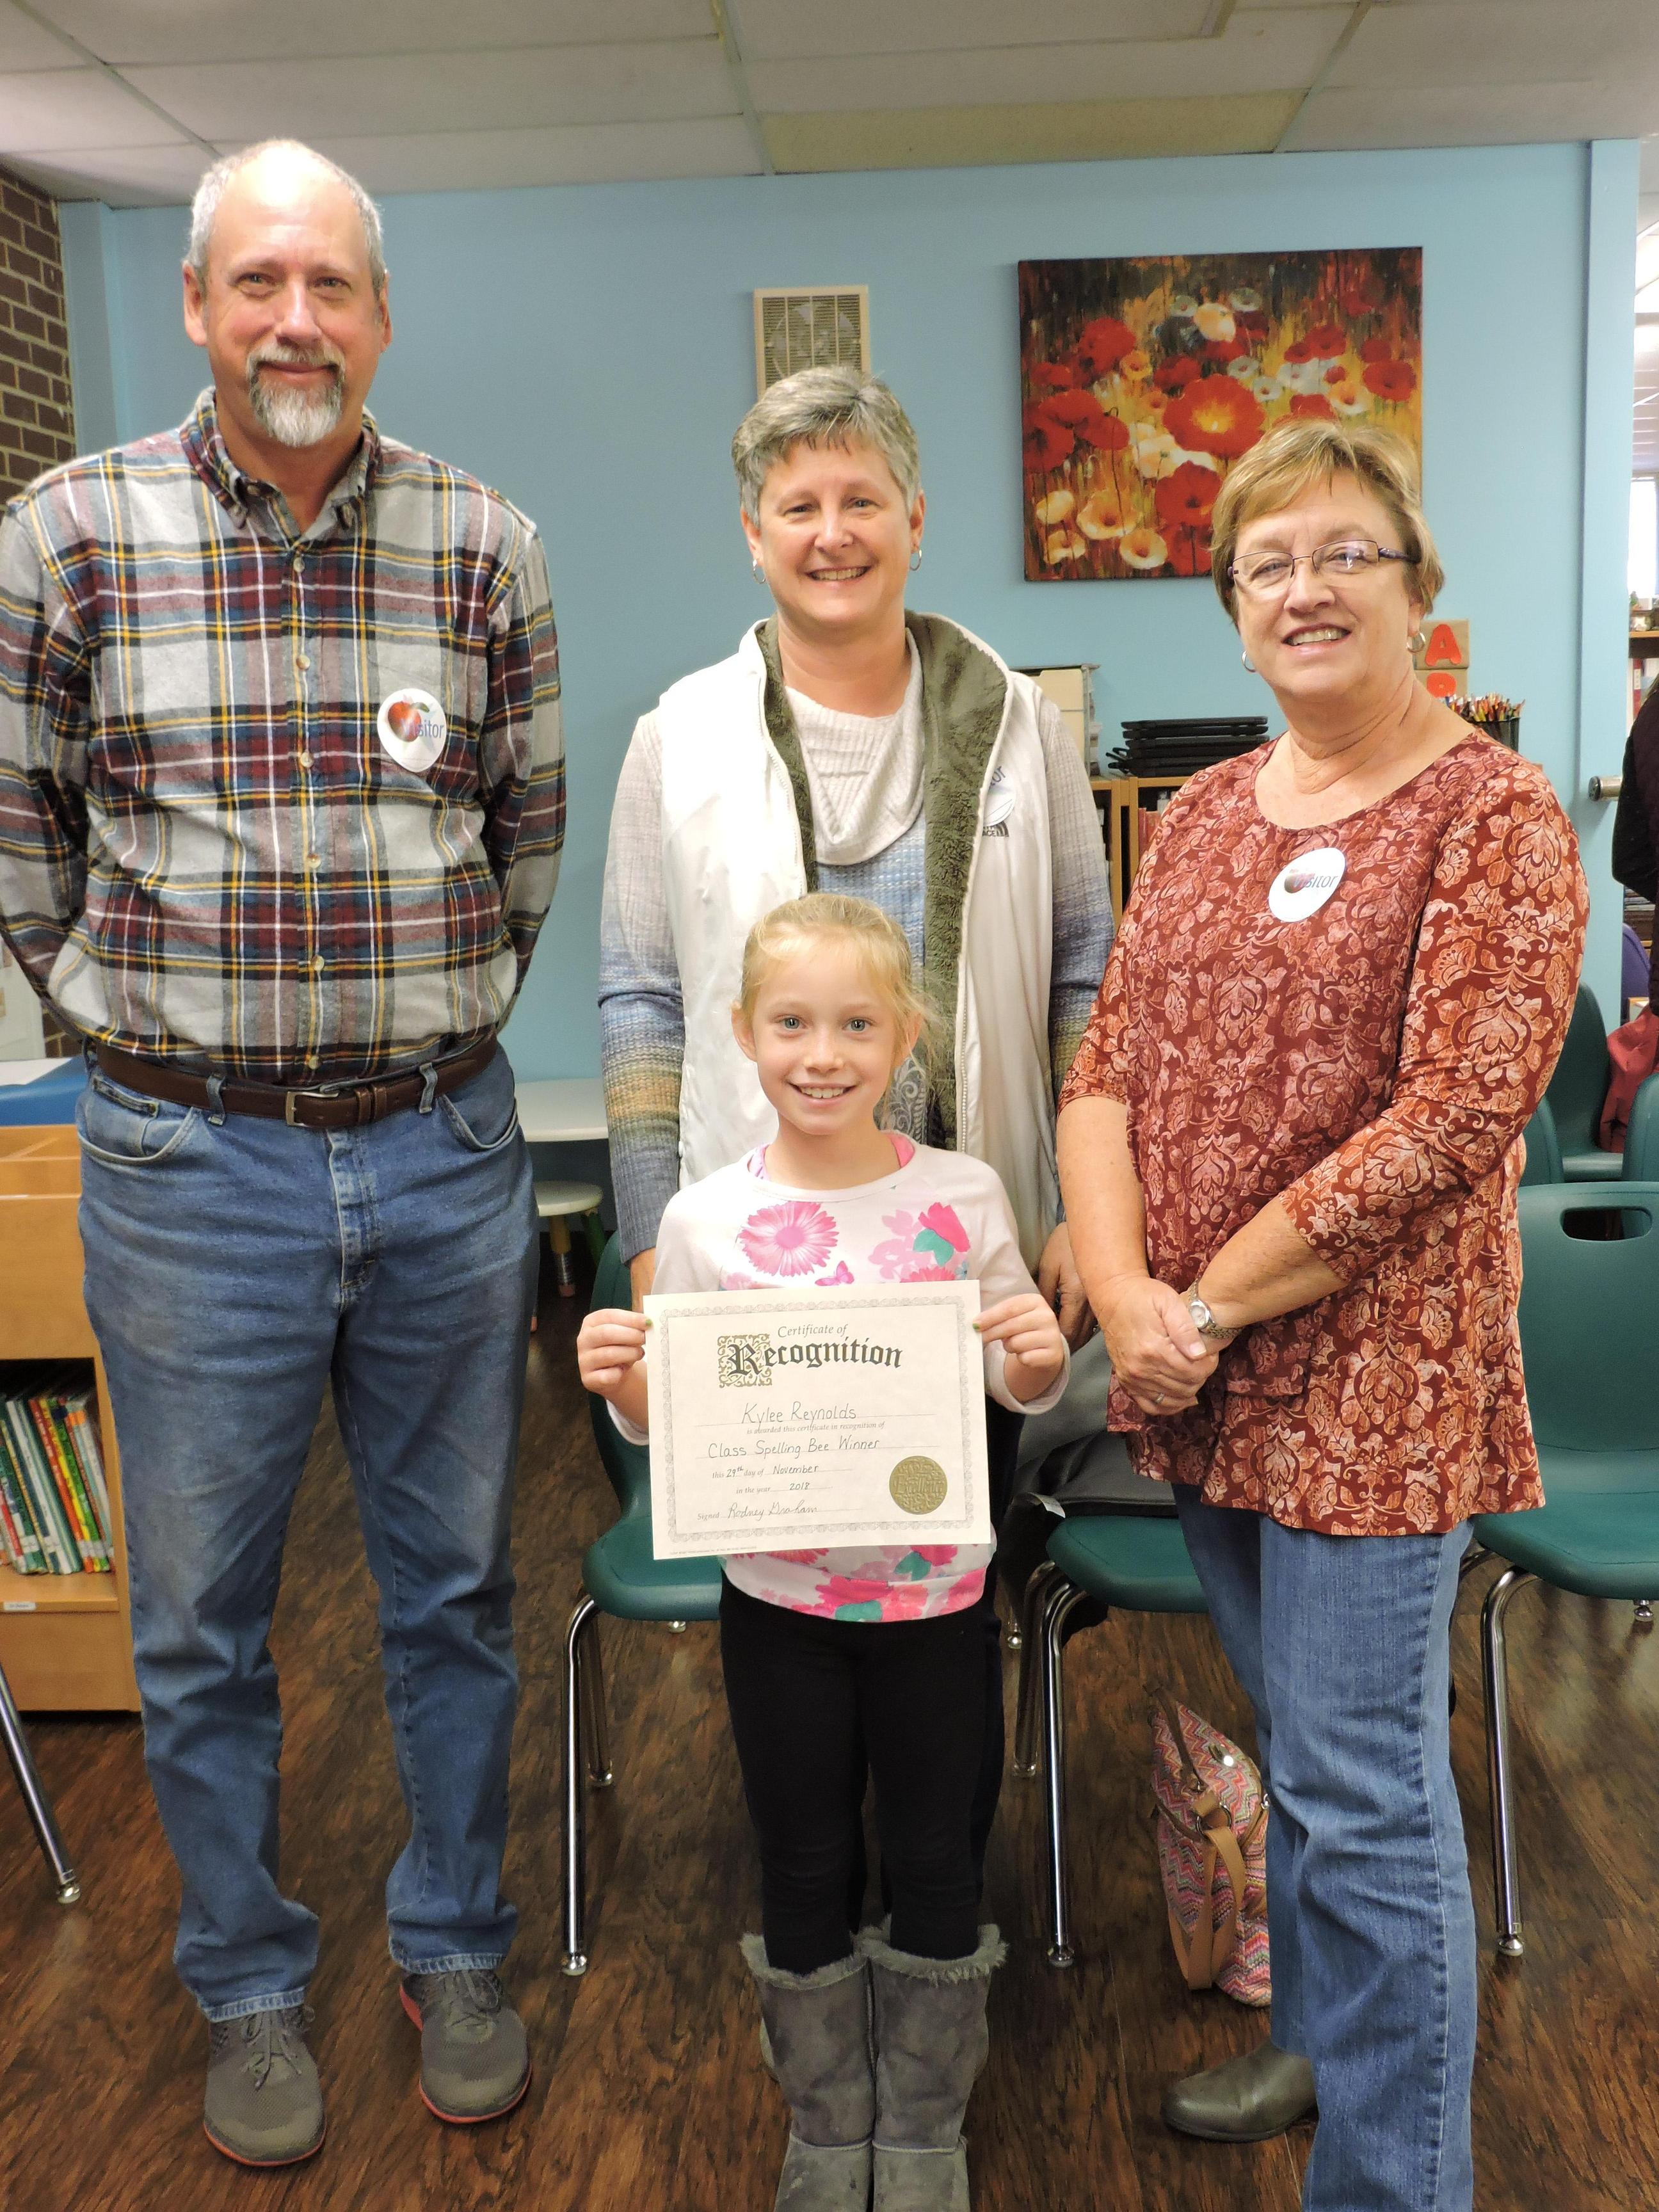 Spelling Bee Participant with grandparents